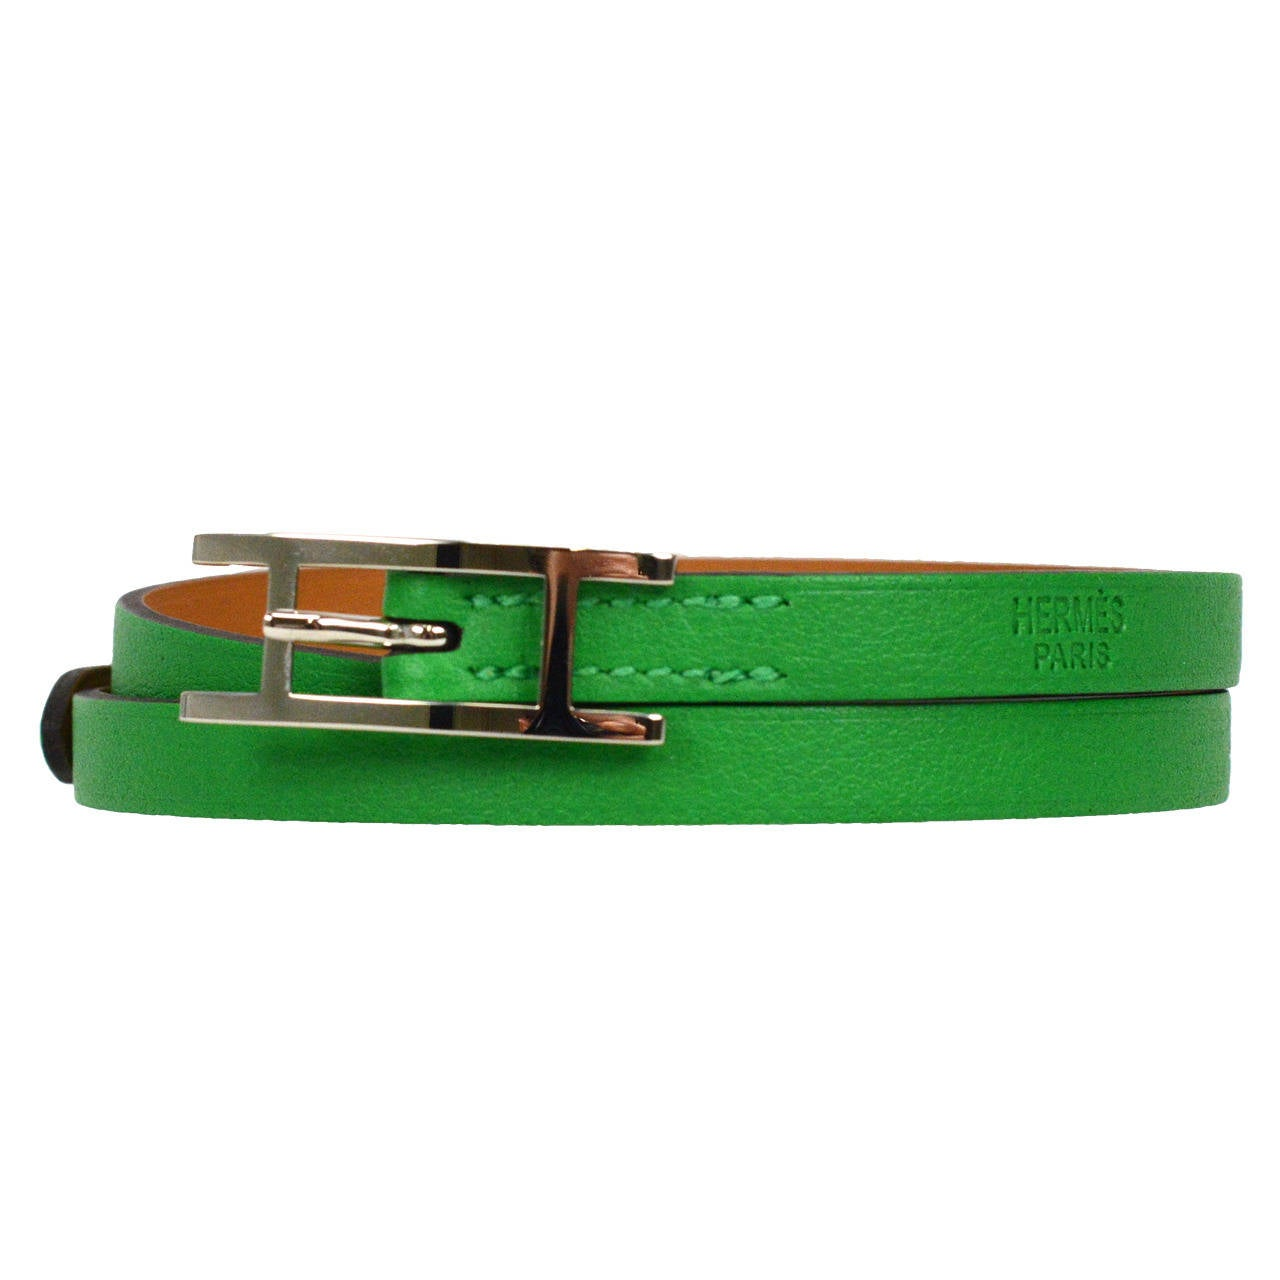 2014 hermes bracelet hapi bambou color 1 - Bambou Color